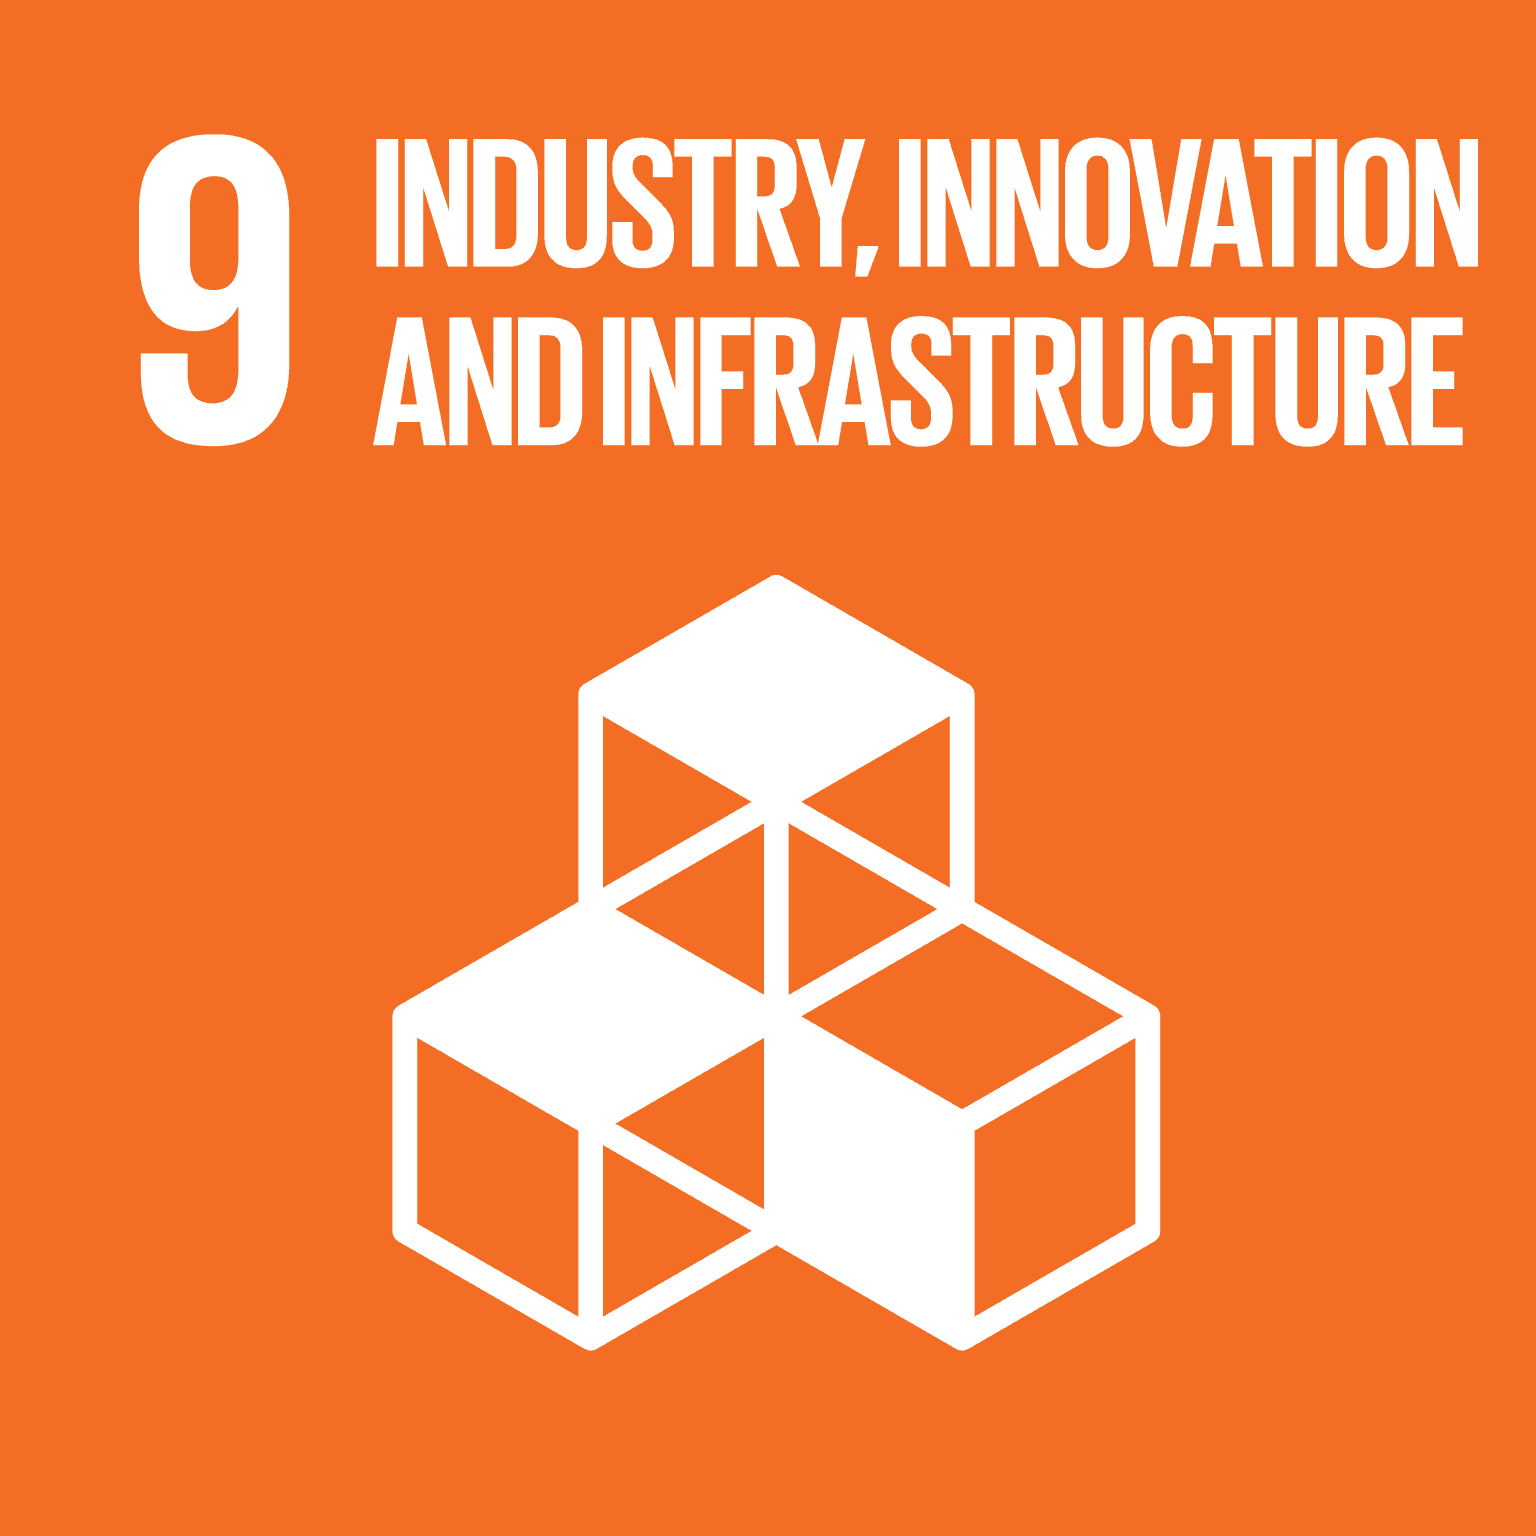 United Nations Sustainable Development Goal 9: Industry, Innovation and Infrastructure